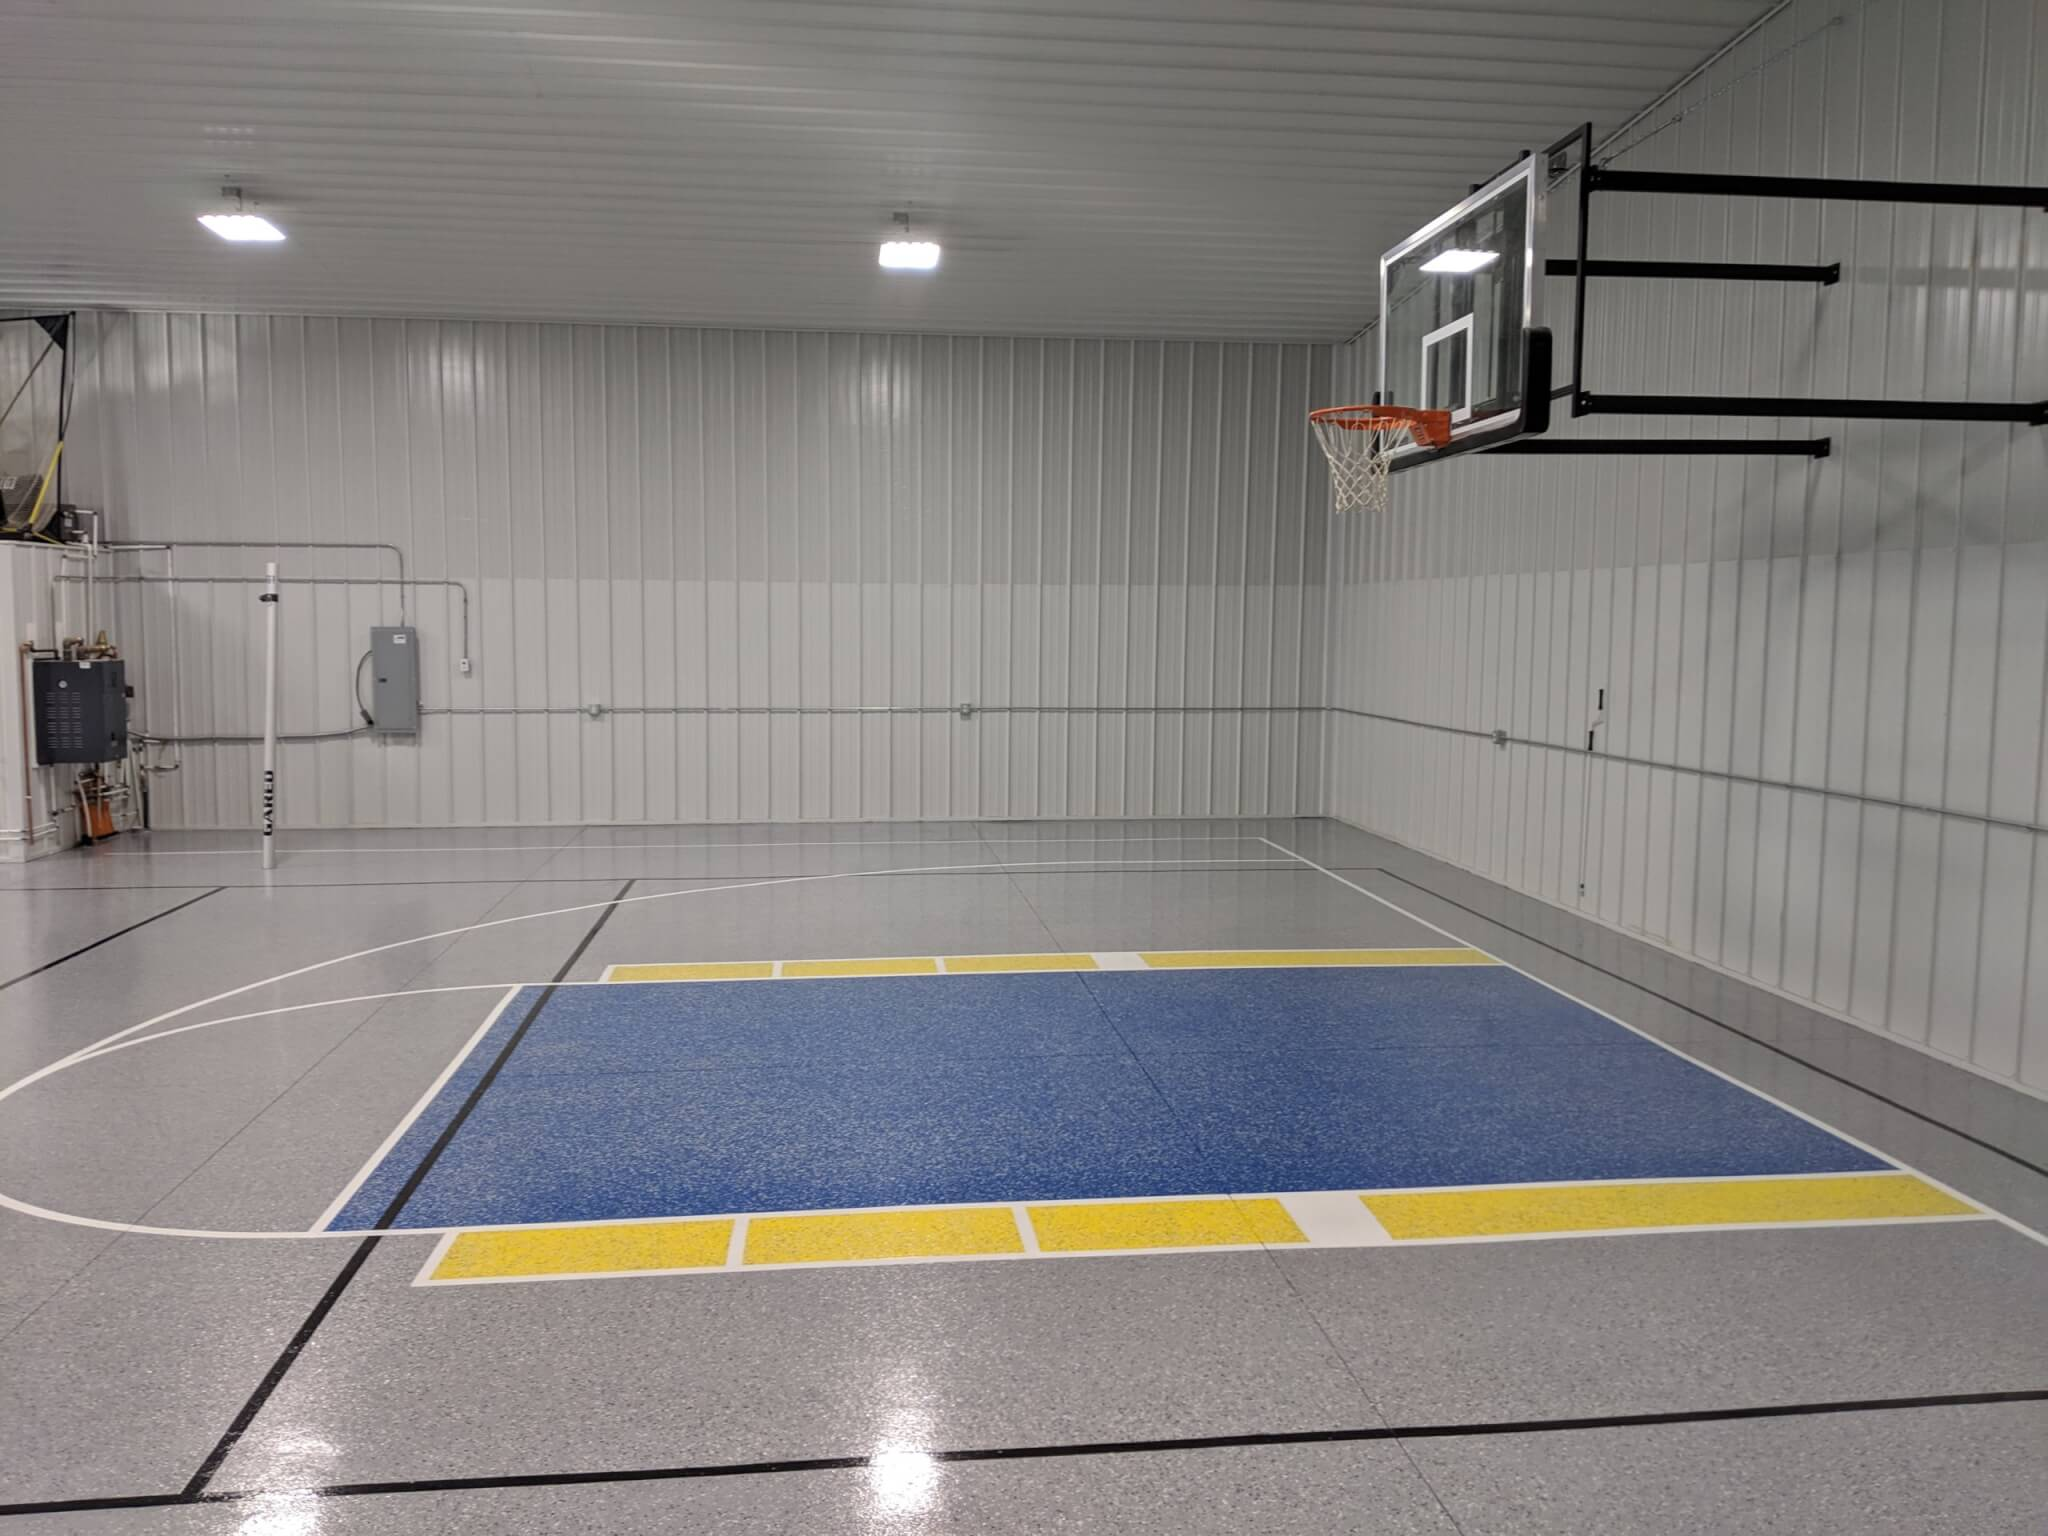 Complete Epoxy Flooring with Basketball and Volley Ball Courts